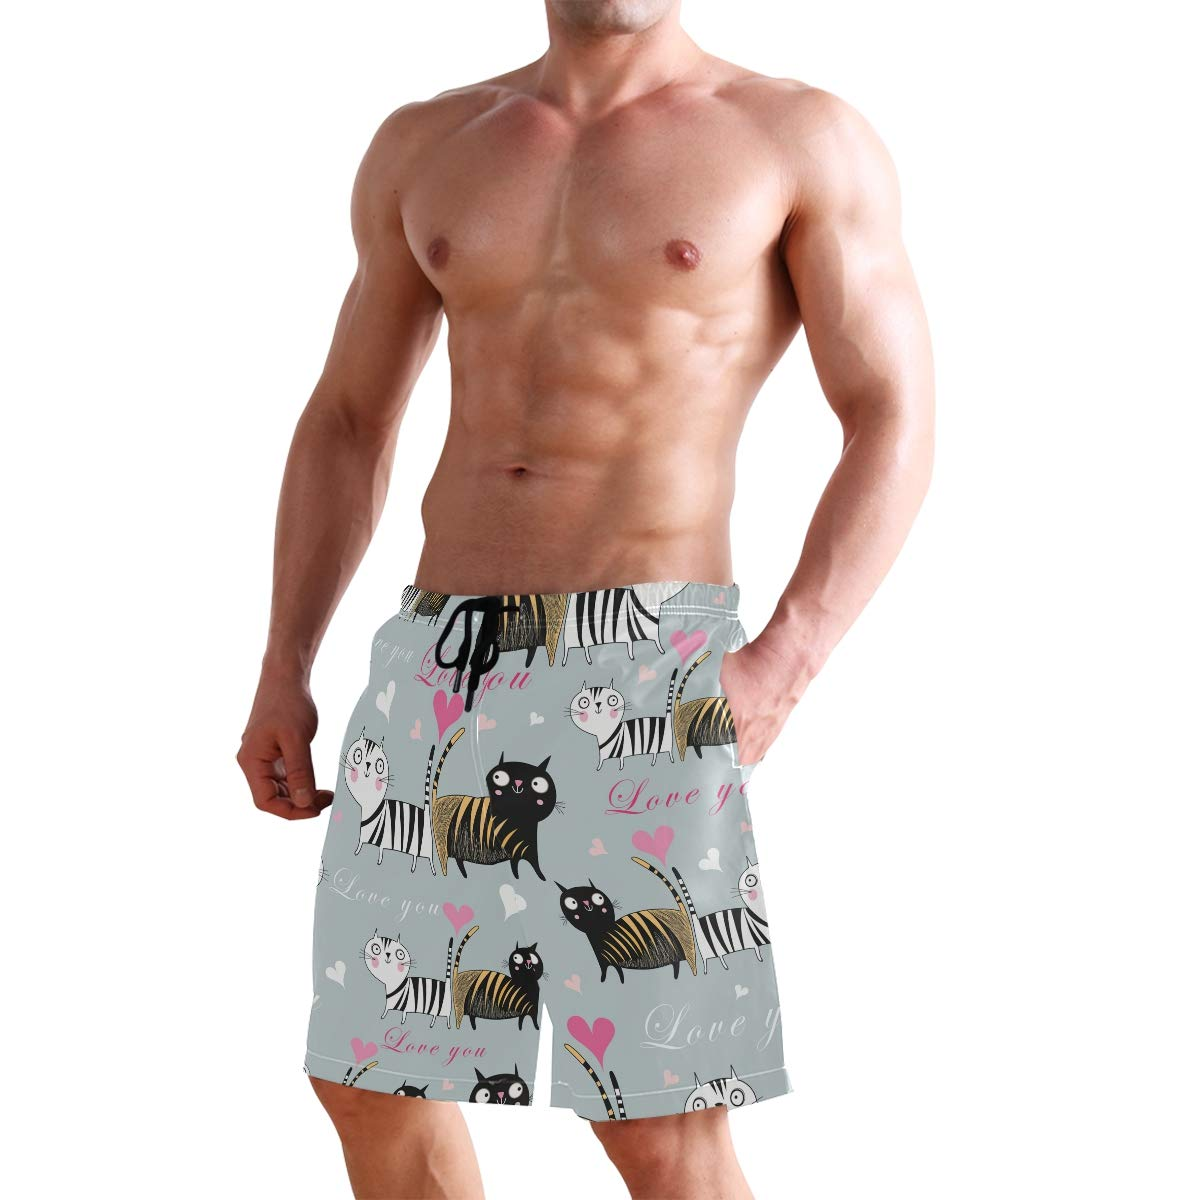 haode Mens Swimwear Running Surfing Sports Beach Camouflage Shorts Trunks Board Pants Swimming Trunks for Men Swimsuit